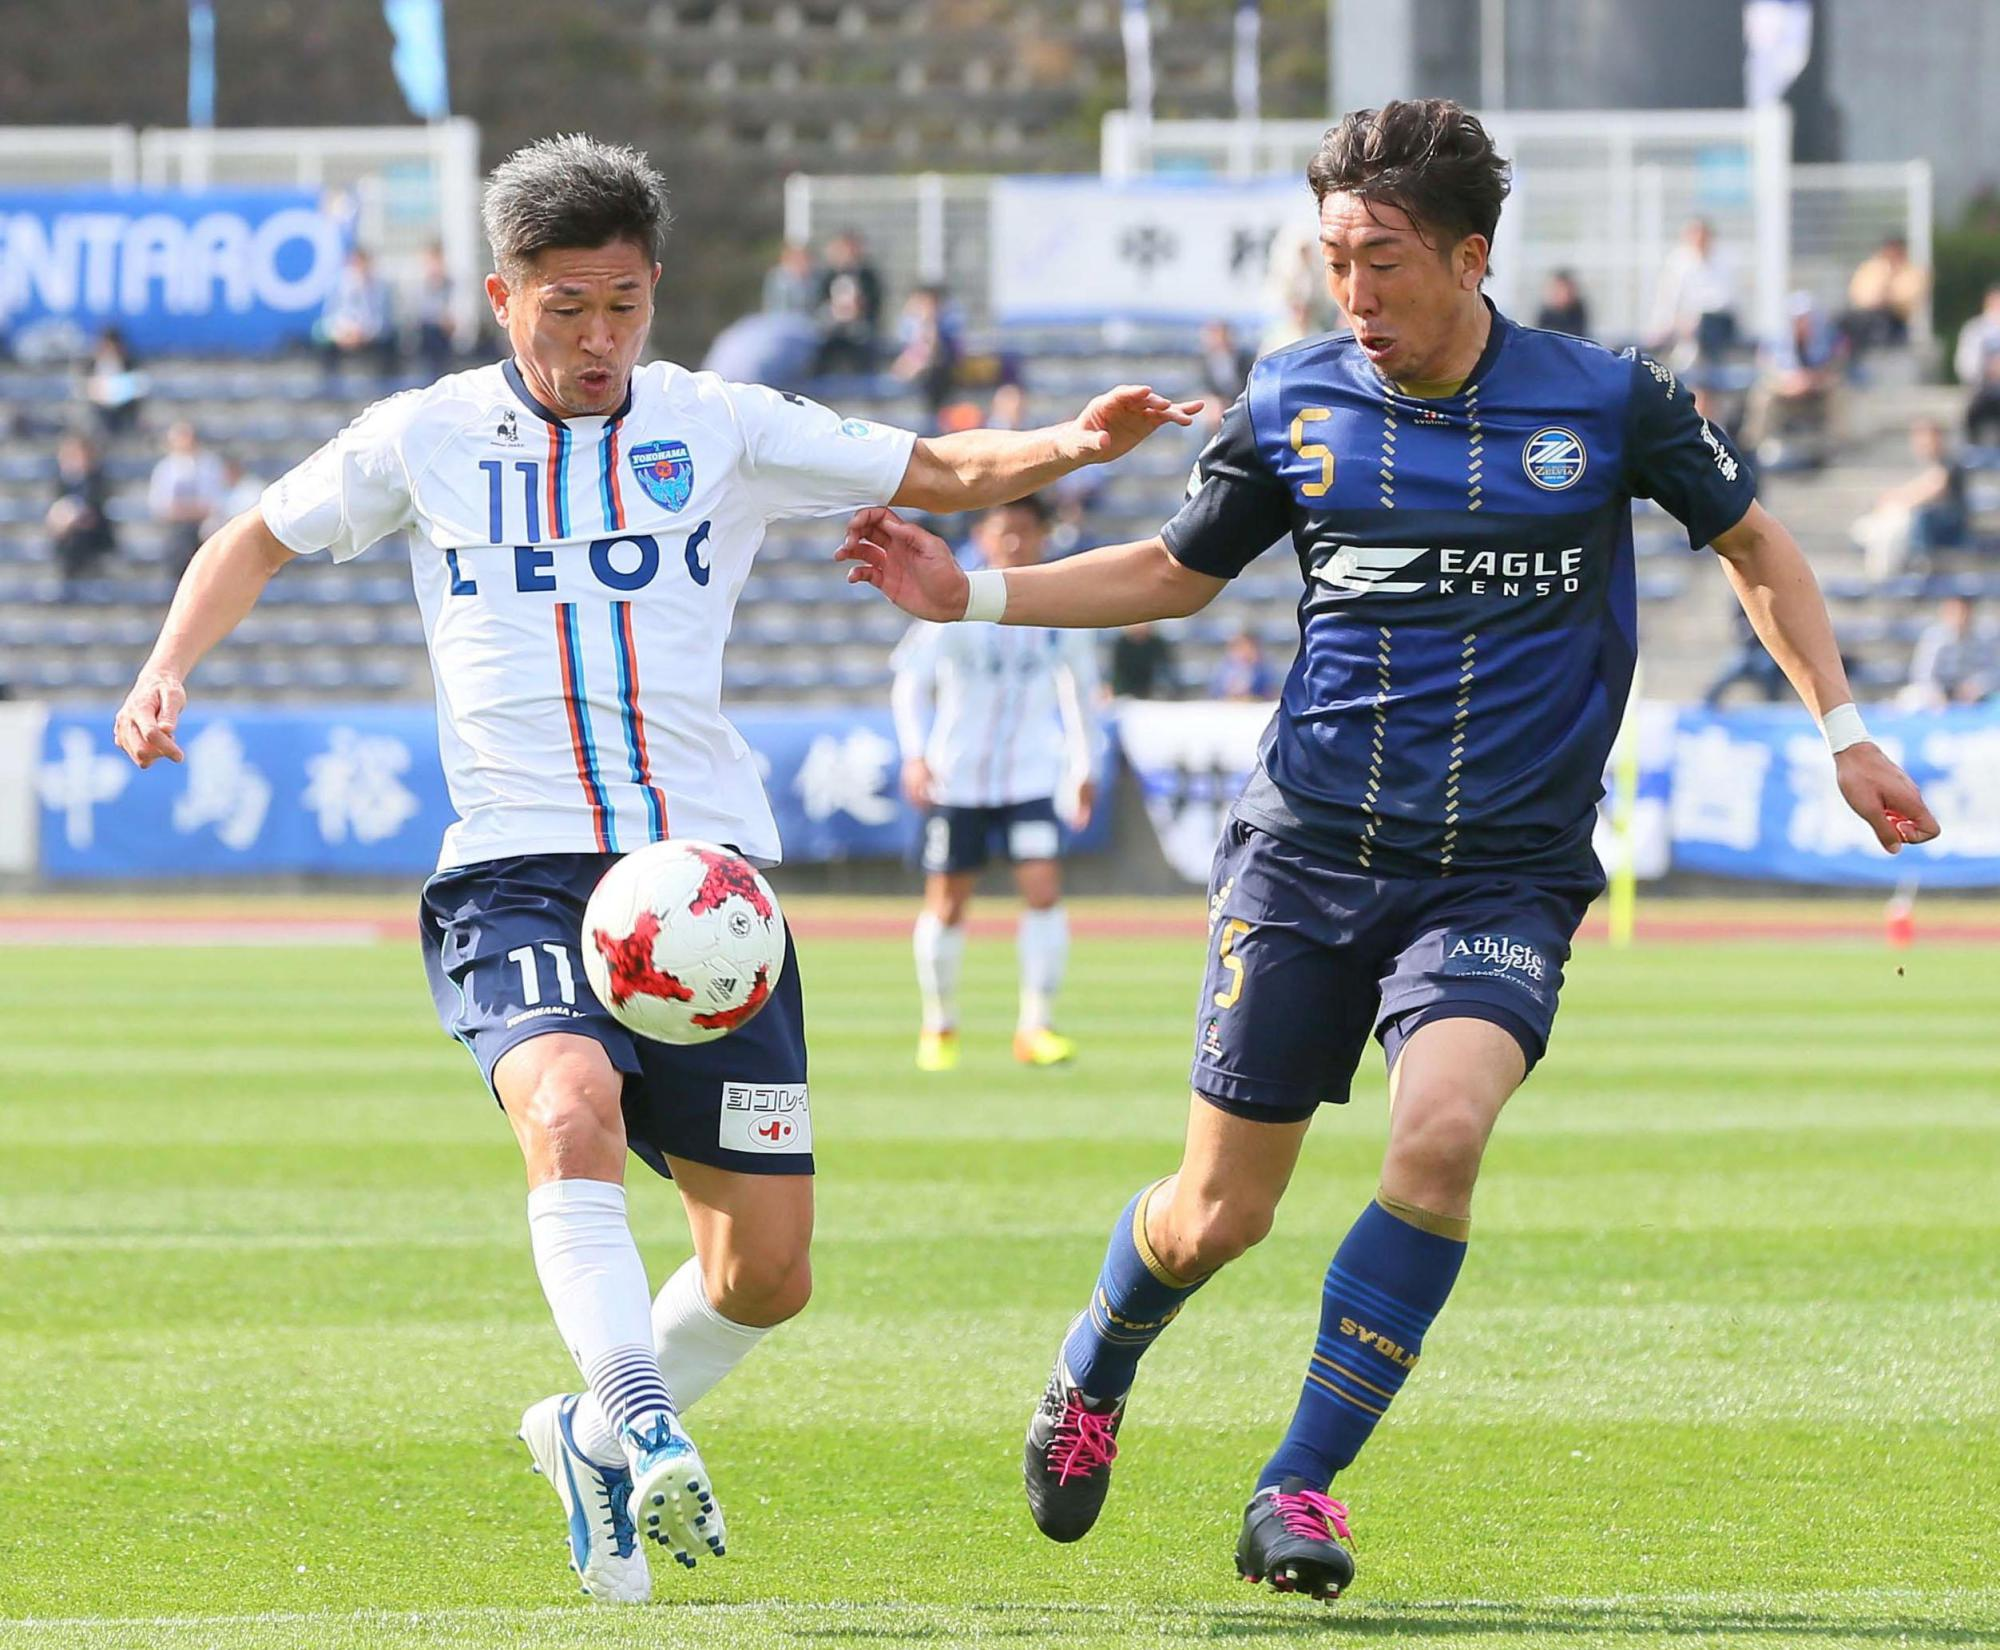 Yokohama FC star Kazuyoshi Miura, seen controlling the ball during Saturday's match against Machida Zelvia, is in his 32nd professional season, a feat that has left a strong impression on his teammates. | KYODO